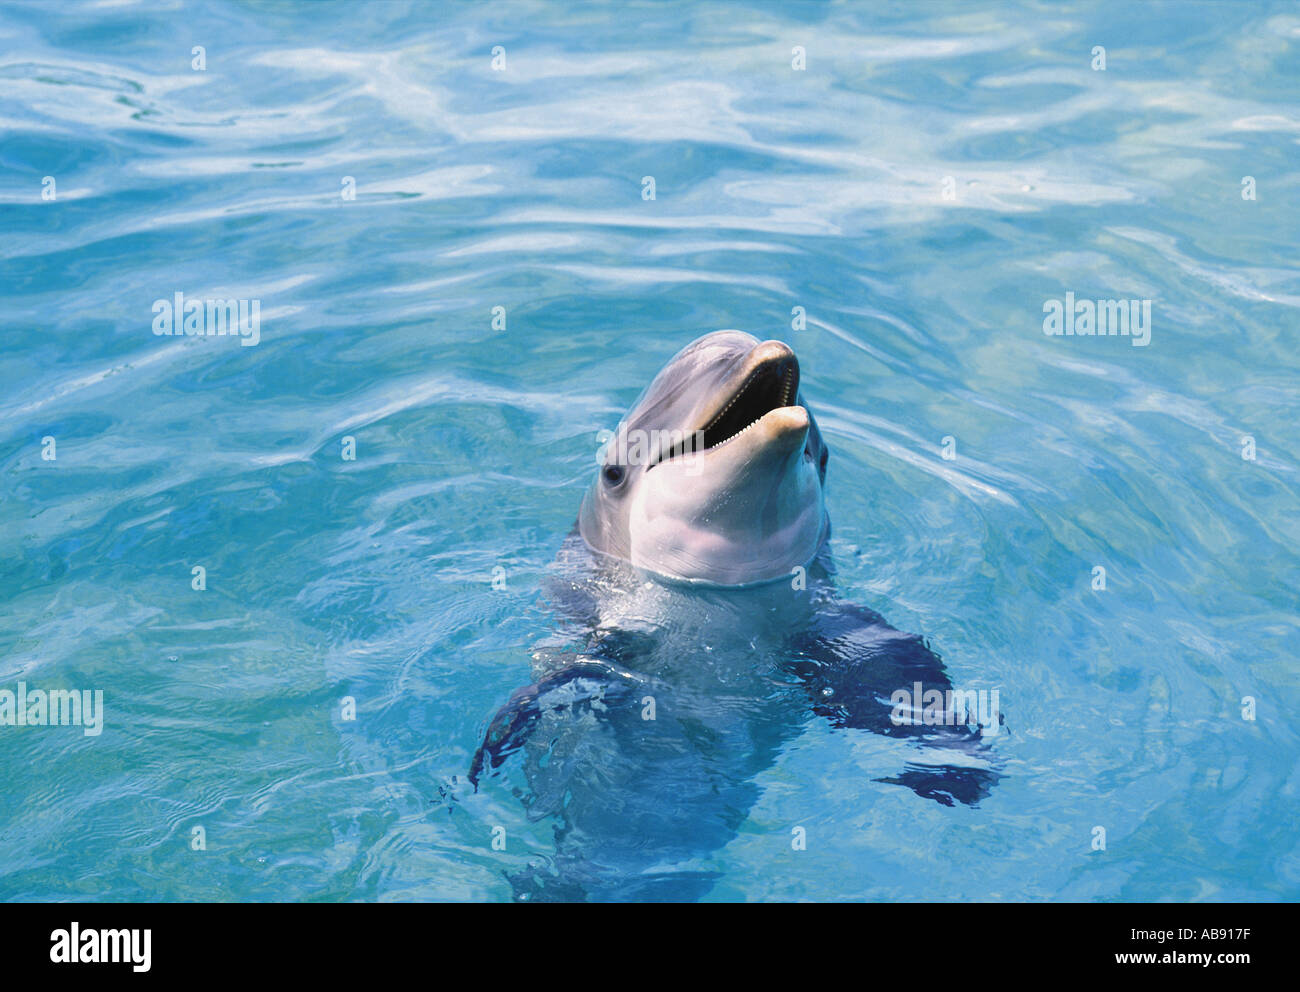 Anatomy Dolphin Stock Photos & Anatomy Dolphin Stock Images - Alamy